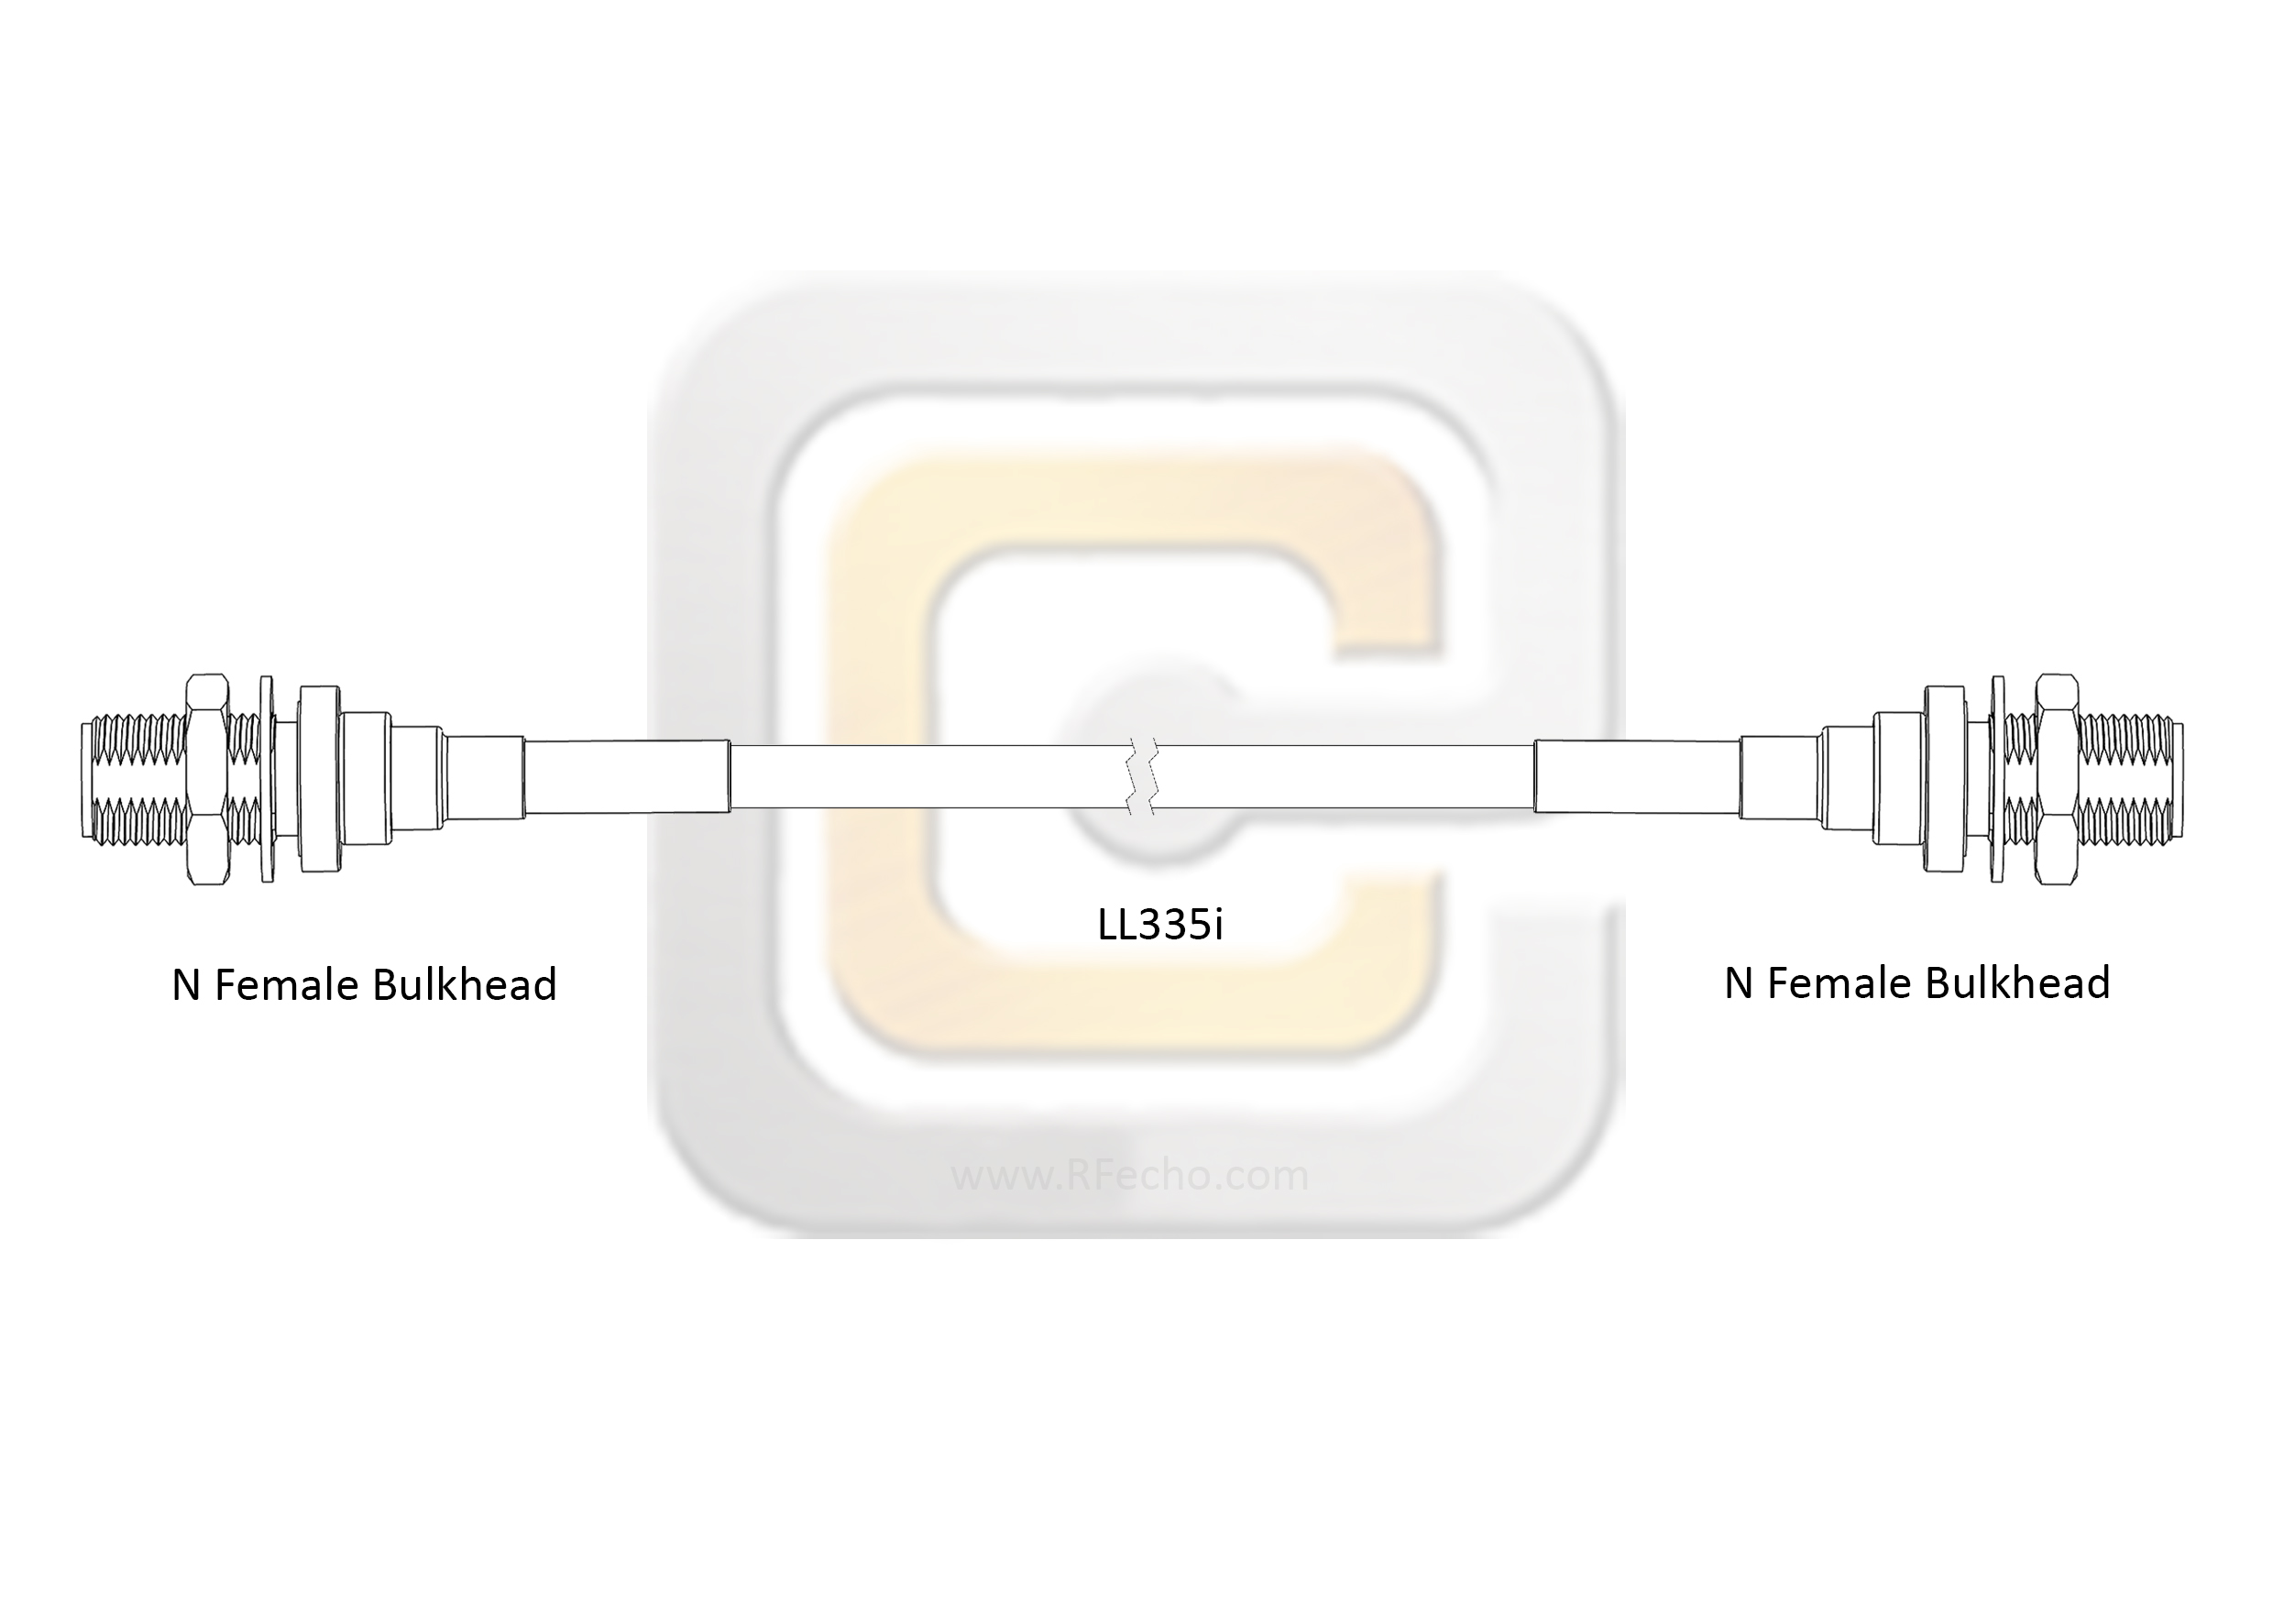 F040 290S1 290S1 180 C outline Low Loss N Female Bulkhead to N Female Bulkhead, 18 GHz, Composite LL335i Coax and RoHS